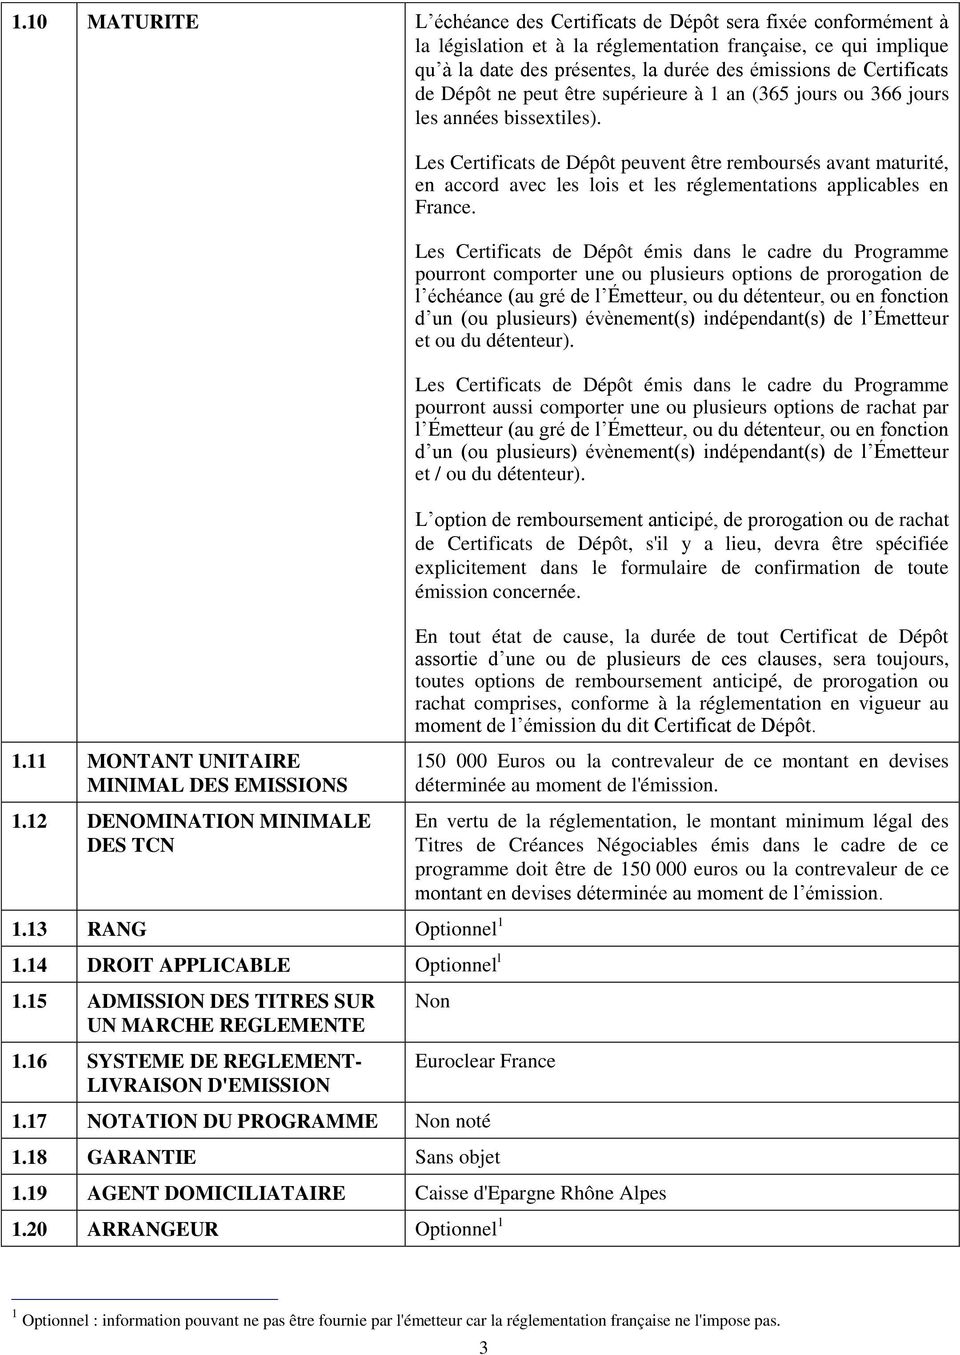 13 RANG Optionnel 1 1.14 DROIT APPLICABLE Optionnel l 1.15 ADMISSION DES TITRES SUR UN MARCHE REGLEMENTE 1.